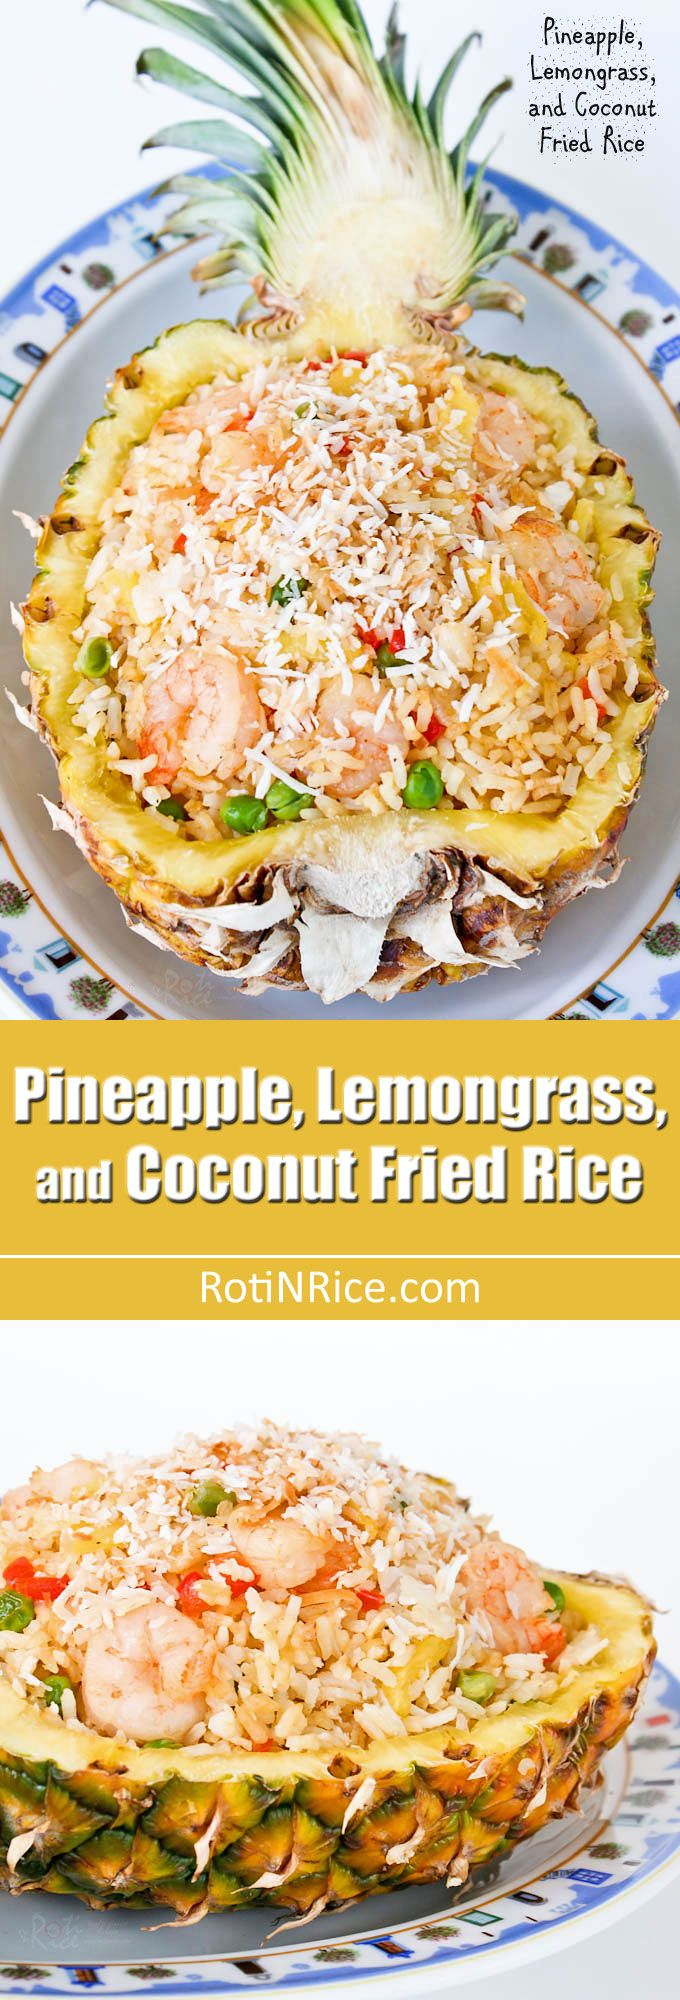 Jazzed up Pineapple, Lemongrass, and Coconut Fried Rice served in a pineapple boat for a truly Southeast Asian flavor. Very fragrant and delicious! | RotiNRice.com